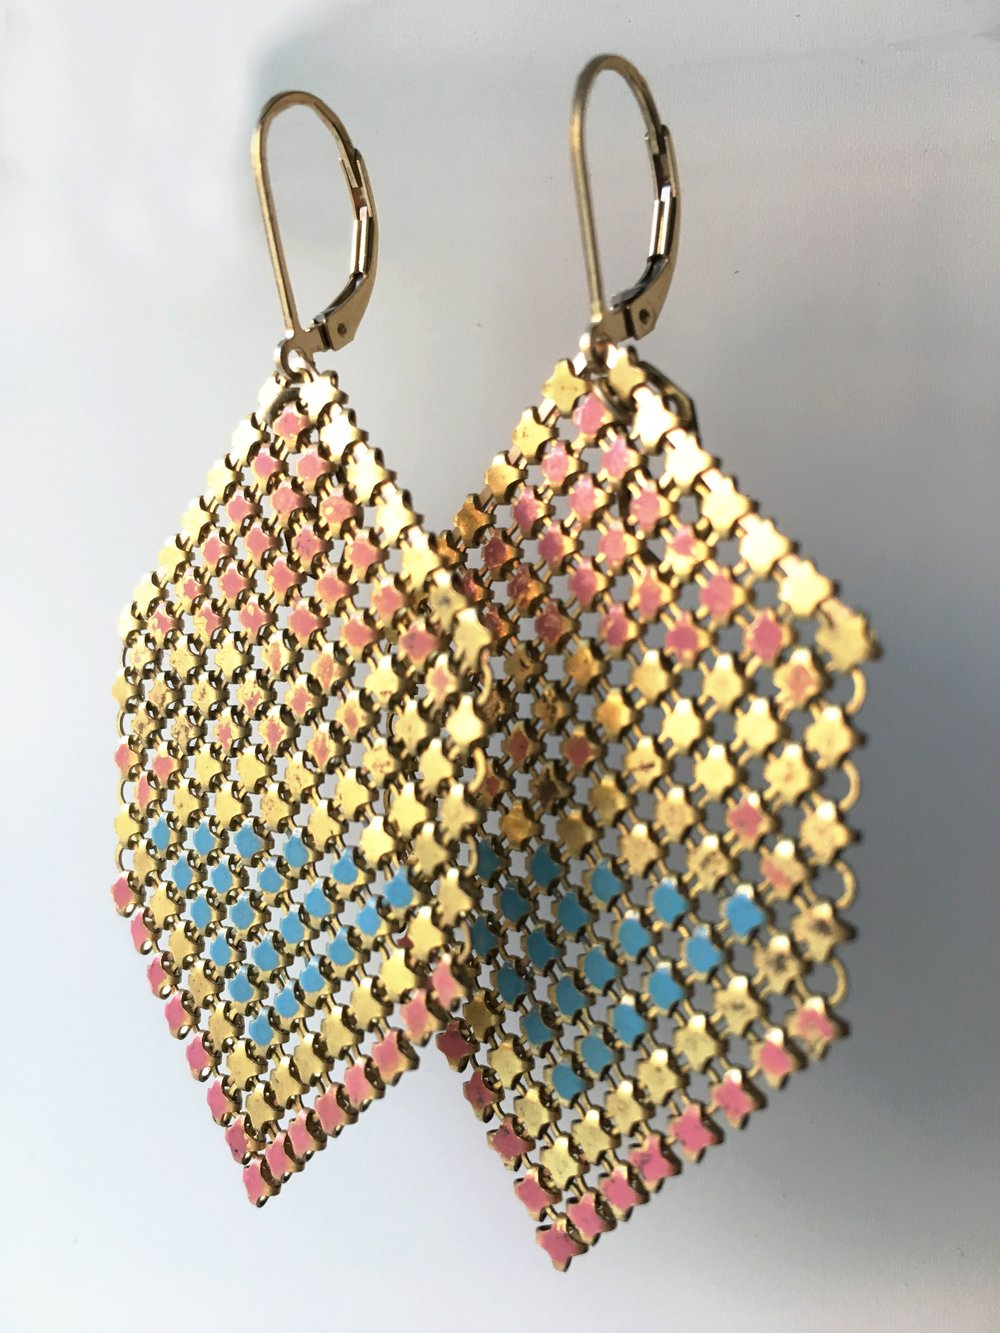 antique-mesh-handmade-earrings-maralrapp.JPG